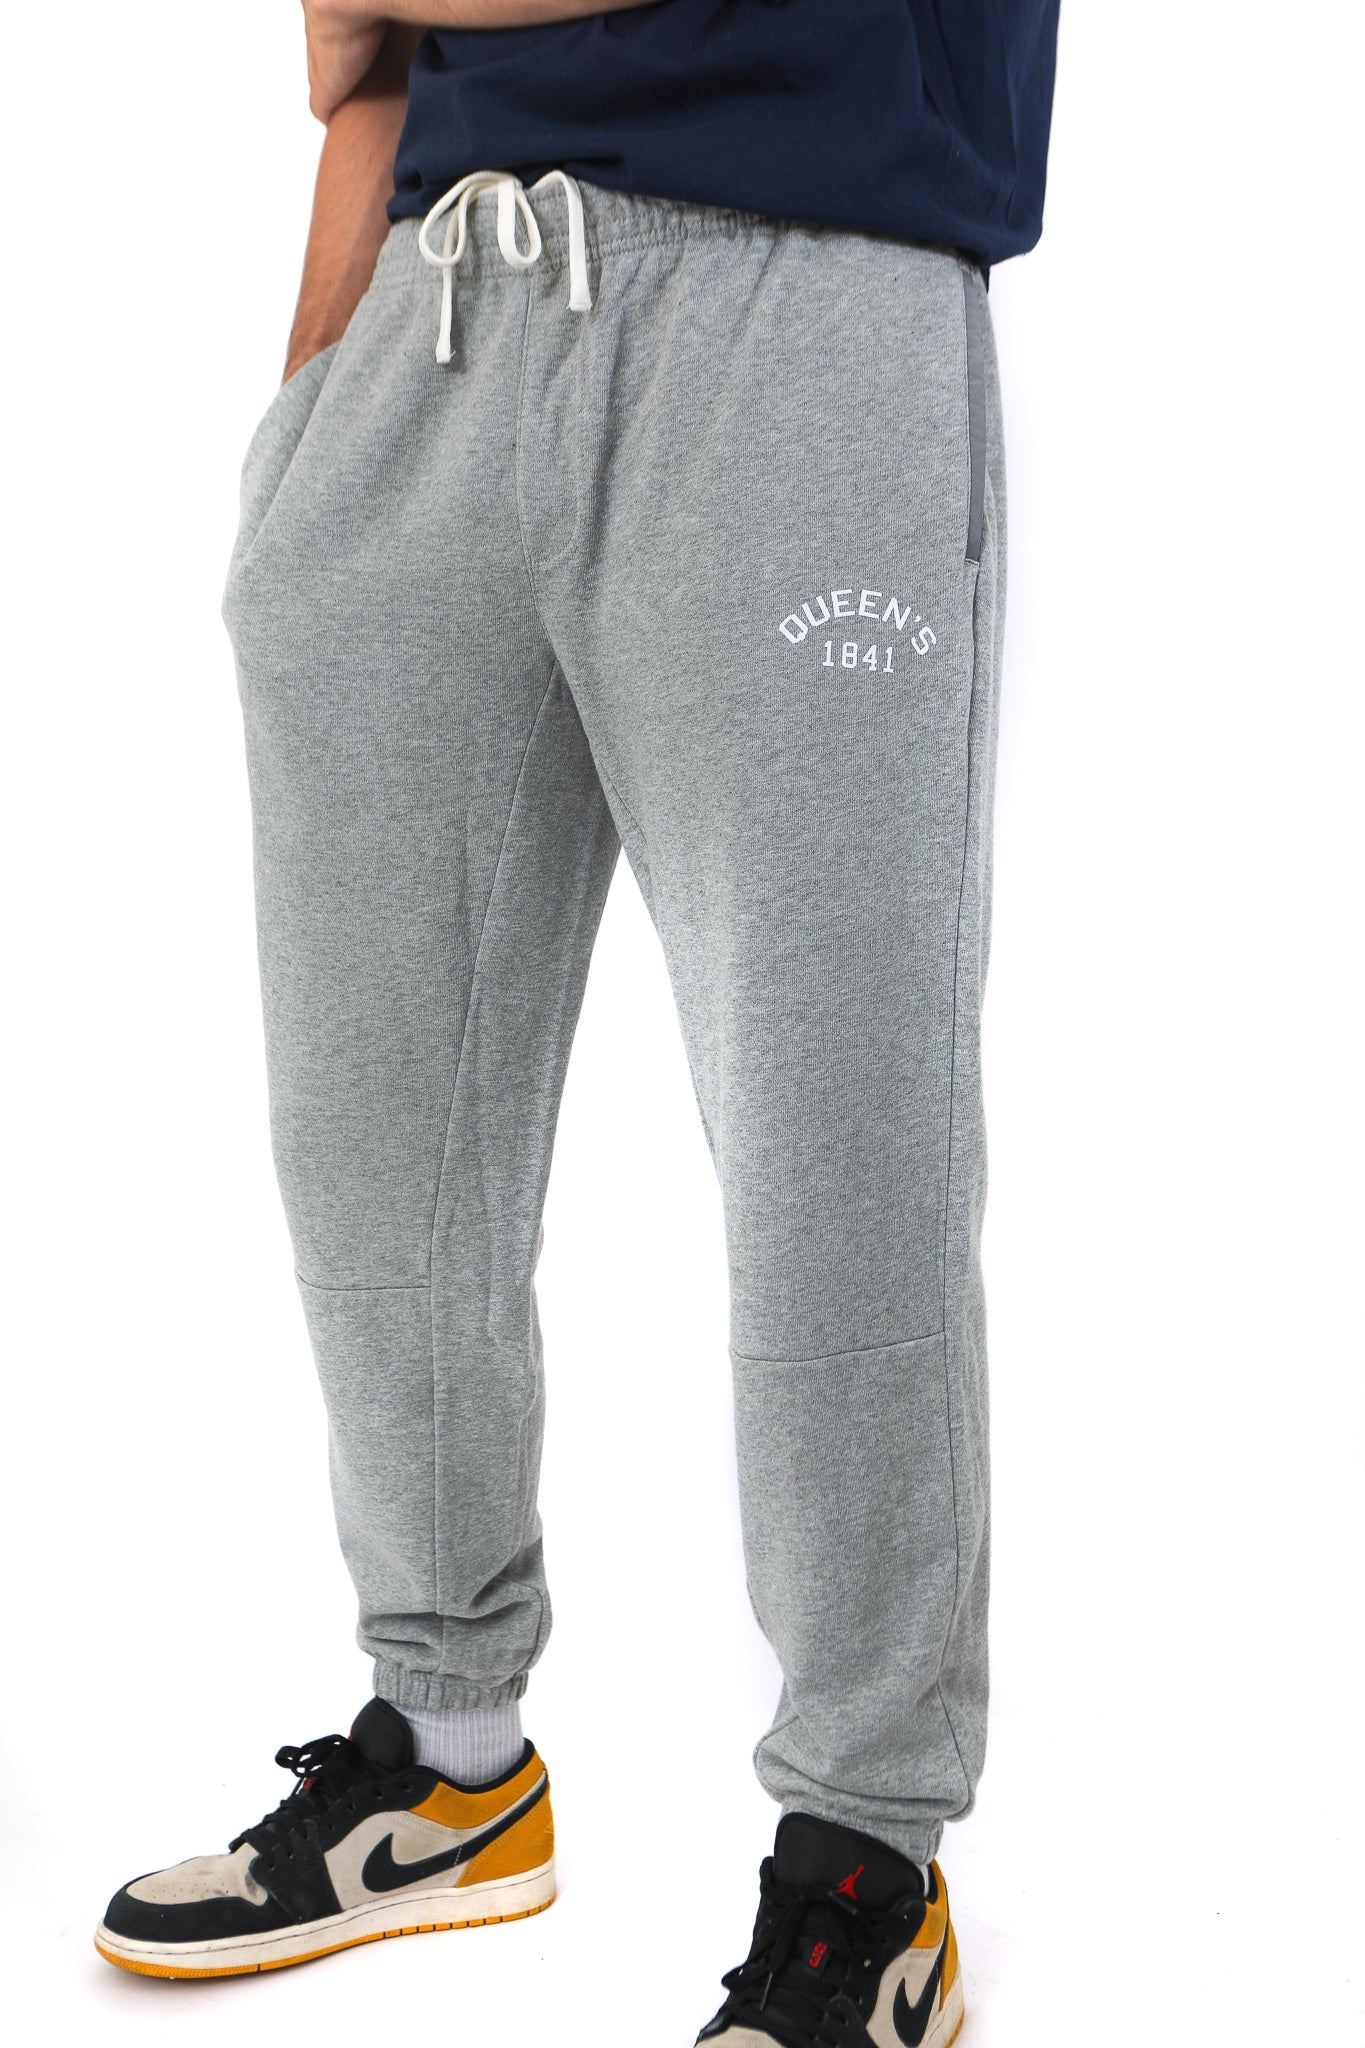 Grey sweatpants with white Queen's logo